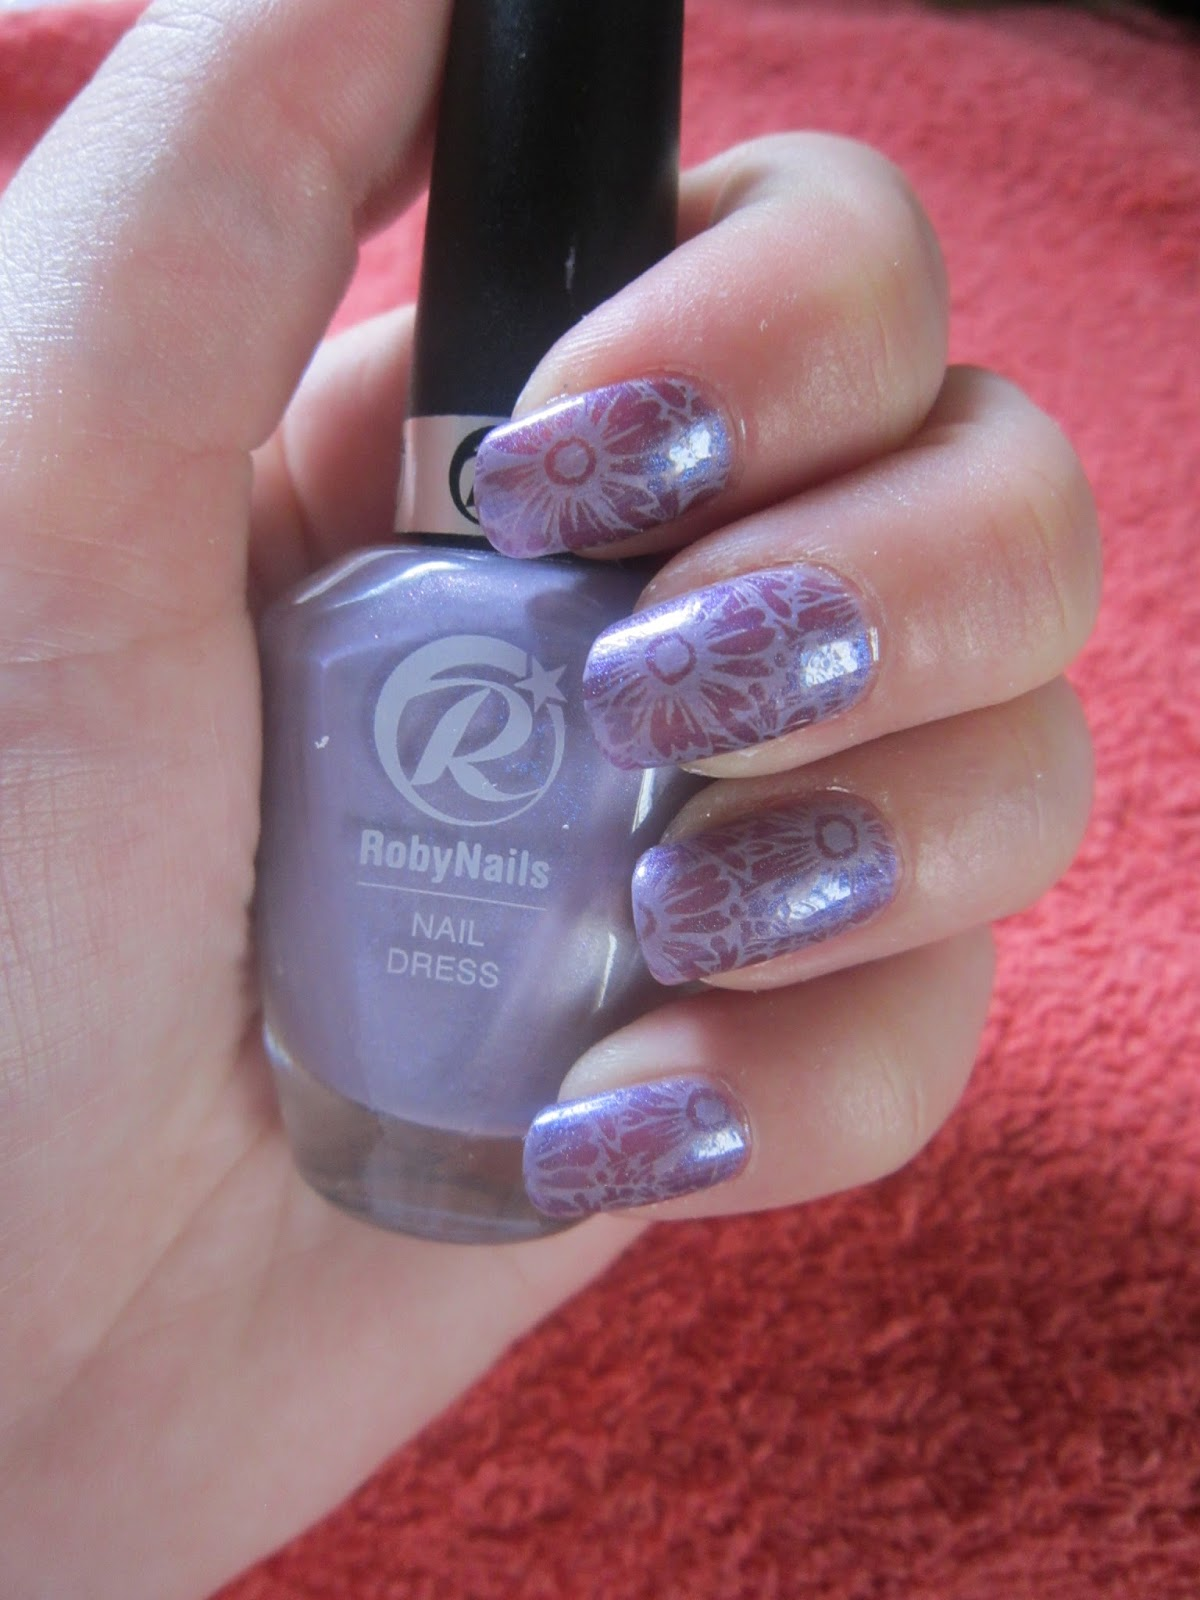 The Fabulous of Life by Ramona: Nail art Purple Summer Flowers